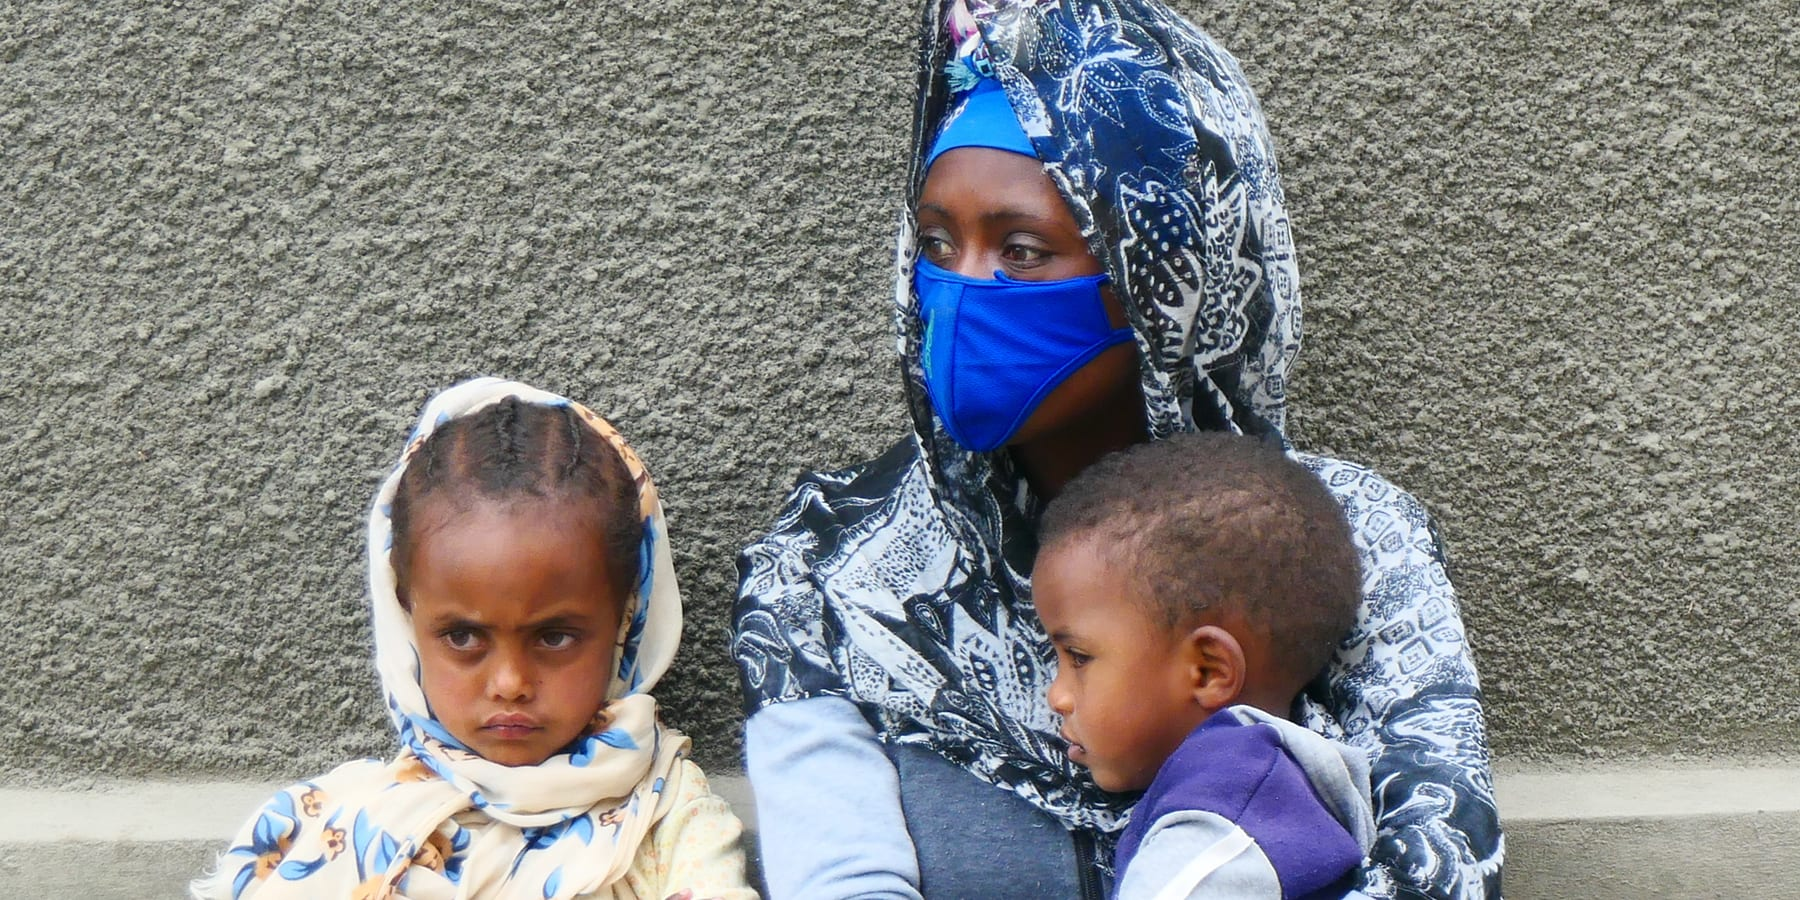 a woman in a mask sits with her two children, one in her lap, against a building wall.